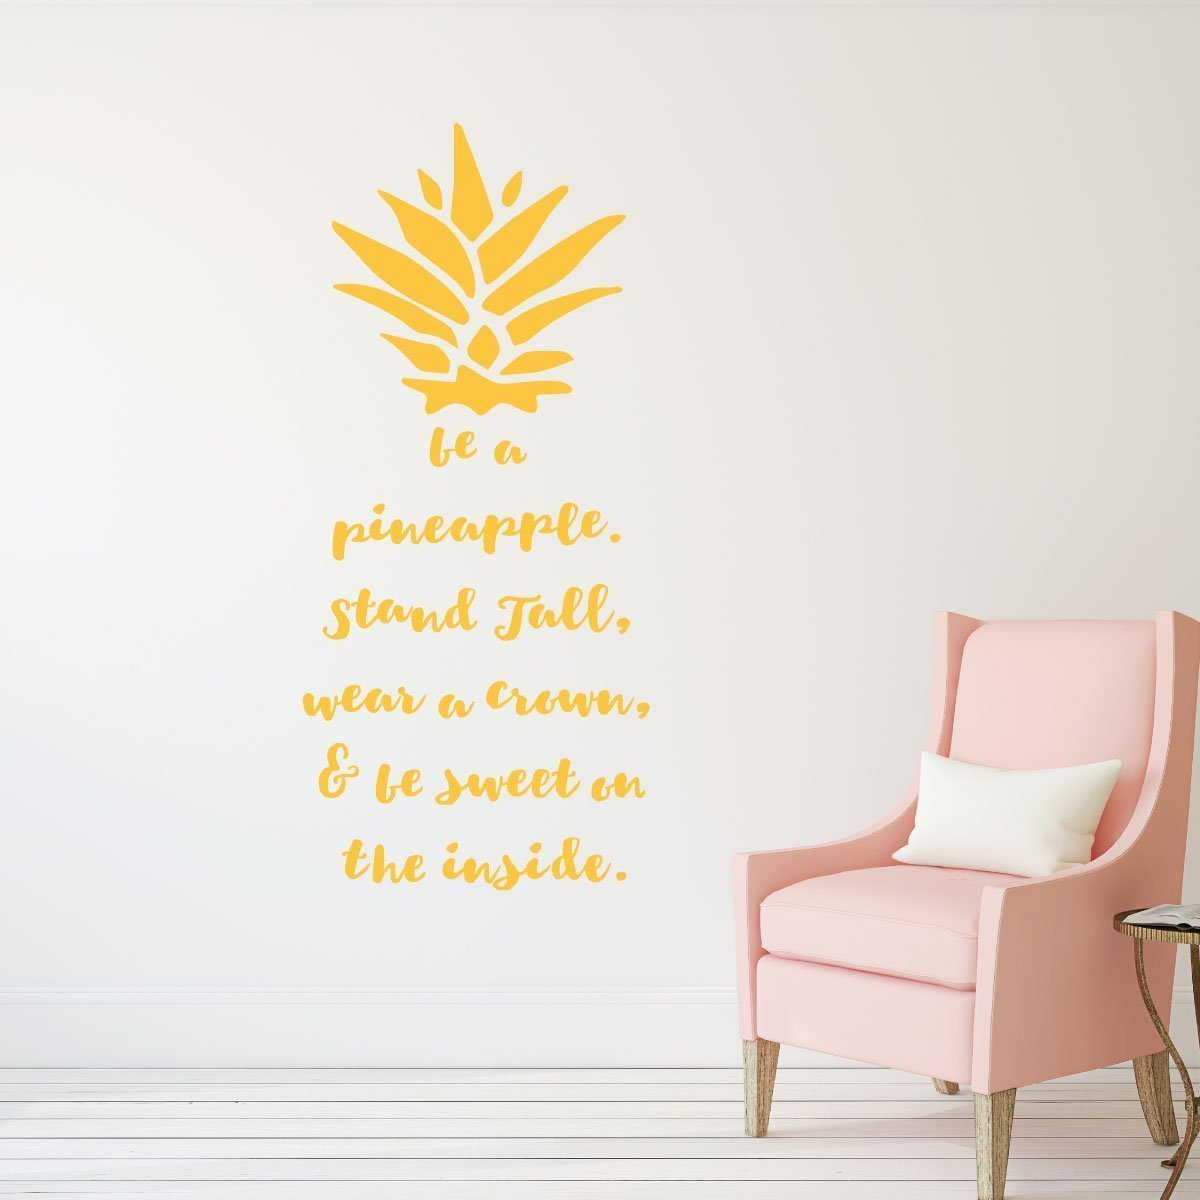 Be A Pineapple Wall Decal Removable Sticker With